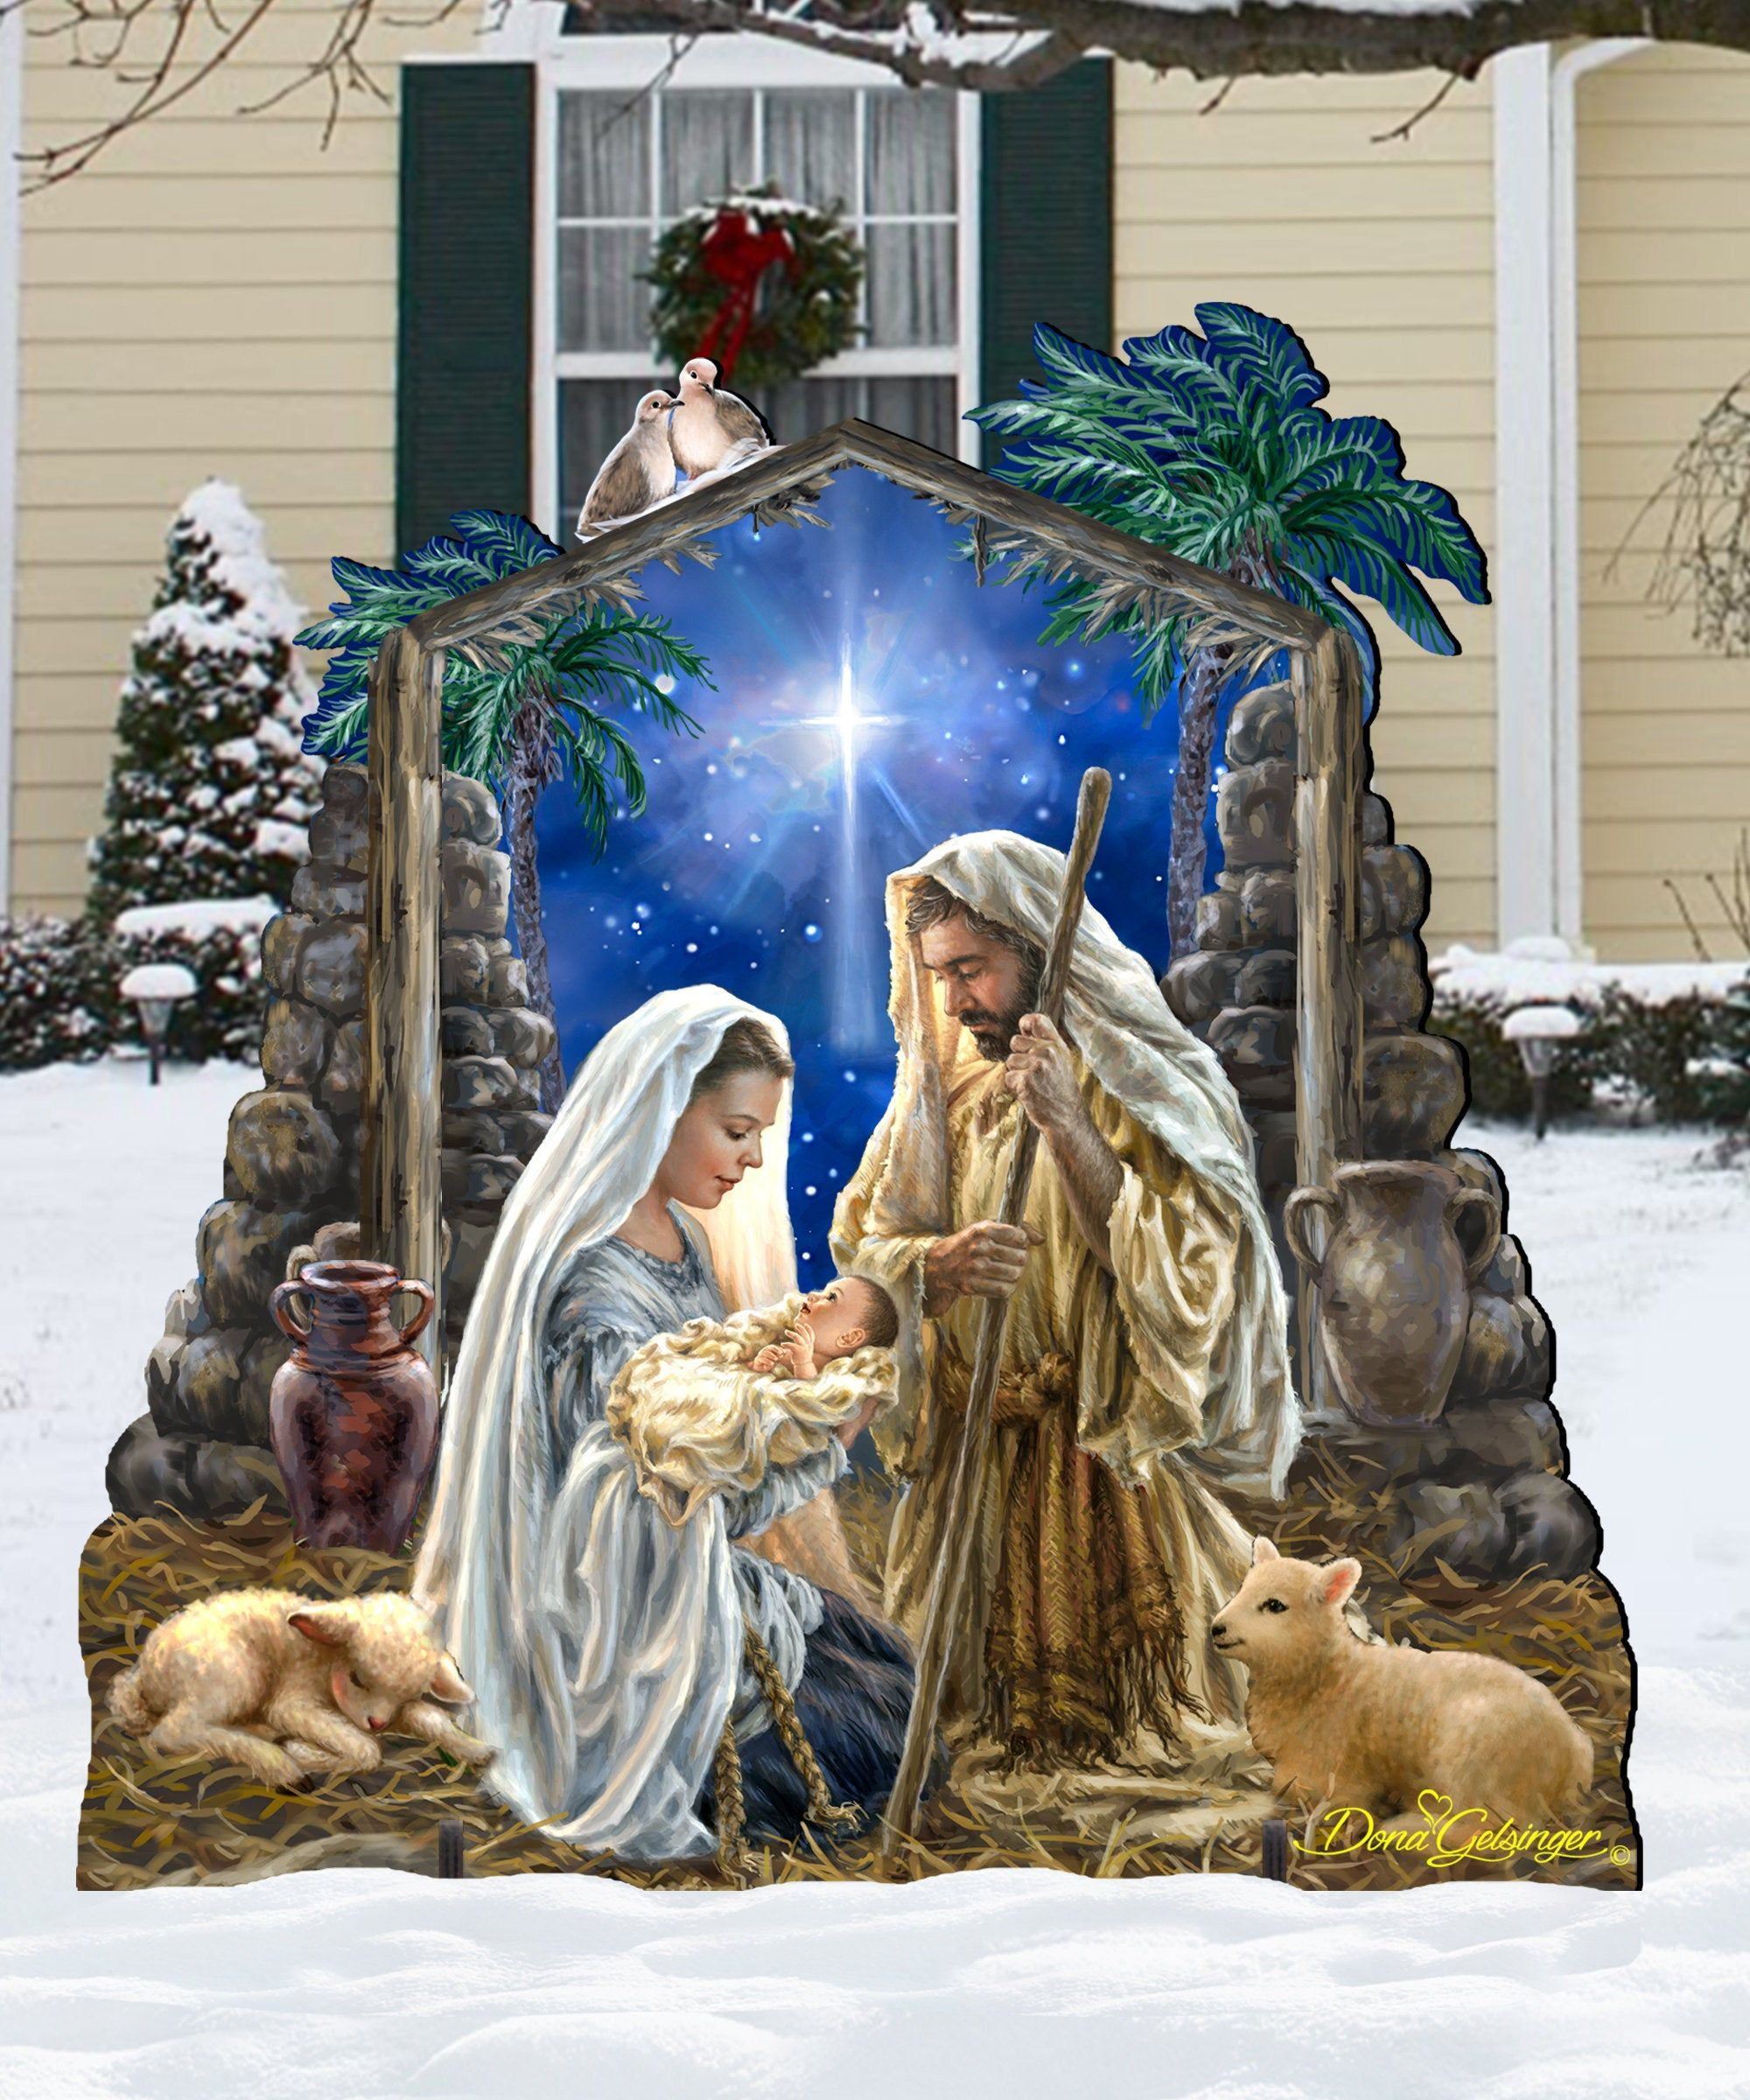 Outdoor Nativity Set Wooden Free Standing Christmas Decoration Etsy Outdoor Nativity Outdoor Nativity Scene Outdoor Nativity Sets